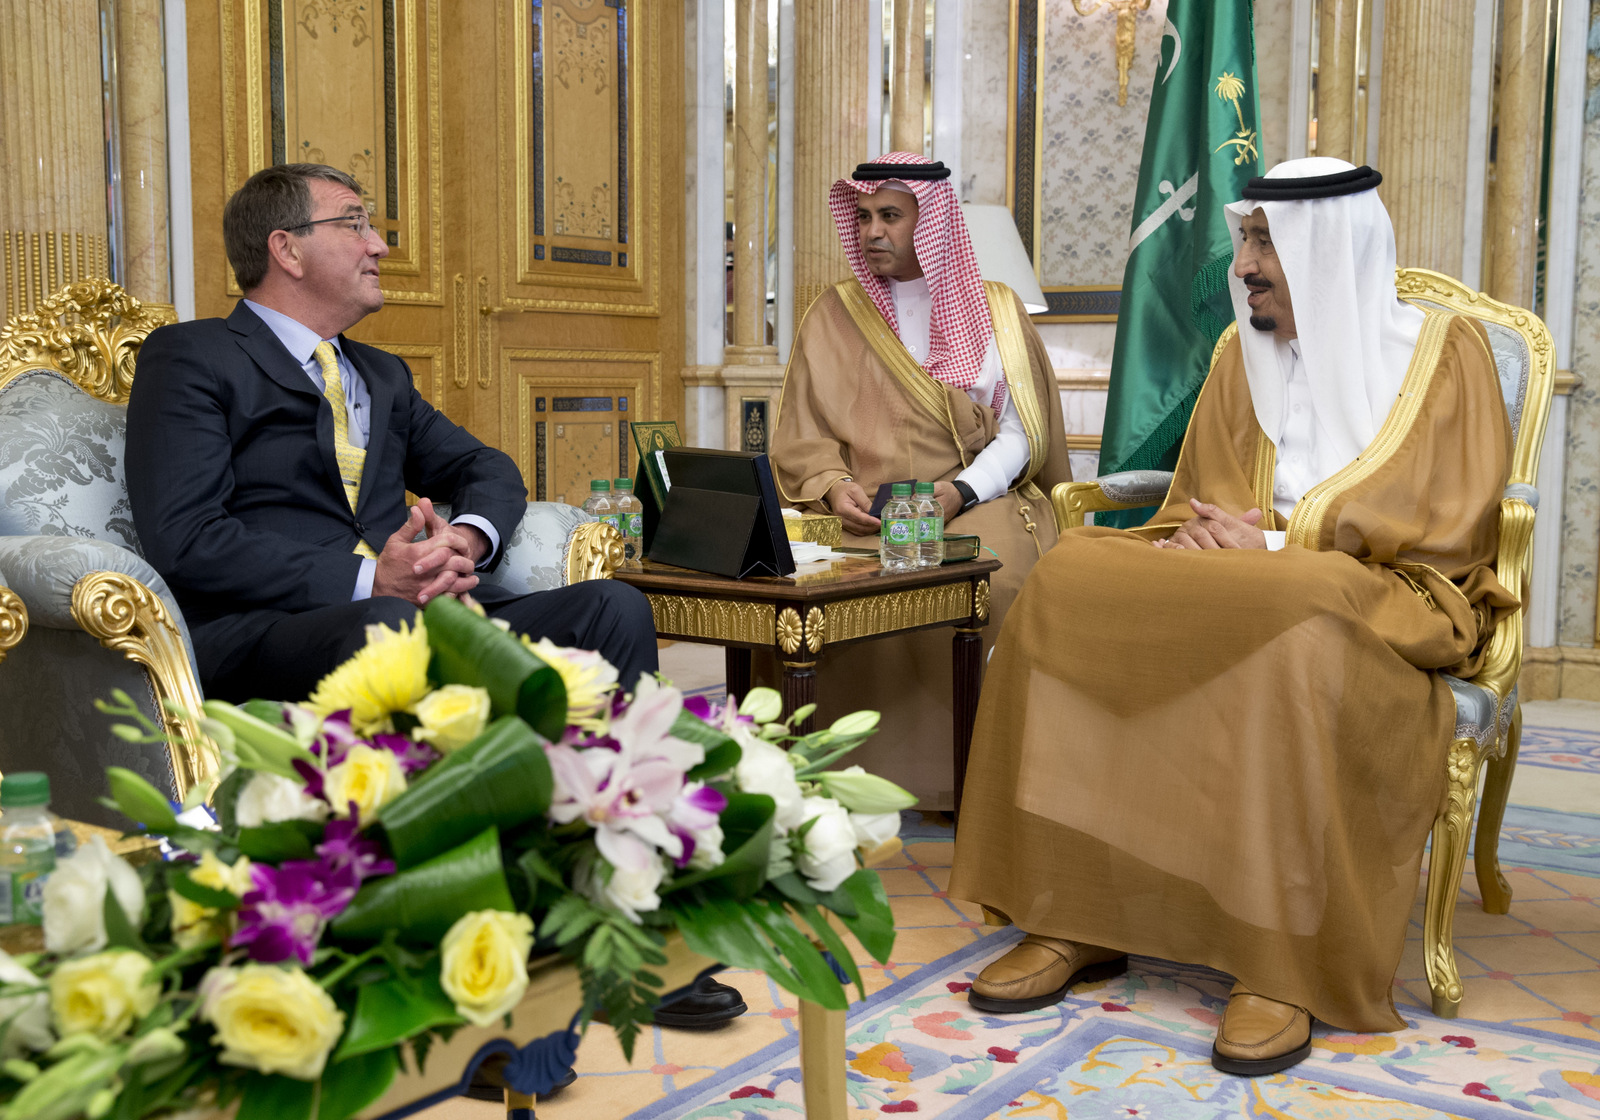 U.S. Defense Secretary Ash Carter, left, meets with Saudi Arabian King Salman bin Abdul Aziz, right, at Al-Salam Palace in Jiddah, Saudi Arabia, Wednesday, July 22, 2015.(AP Photo/Carolyn Kaster, Pool)